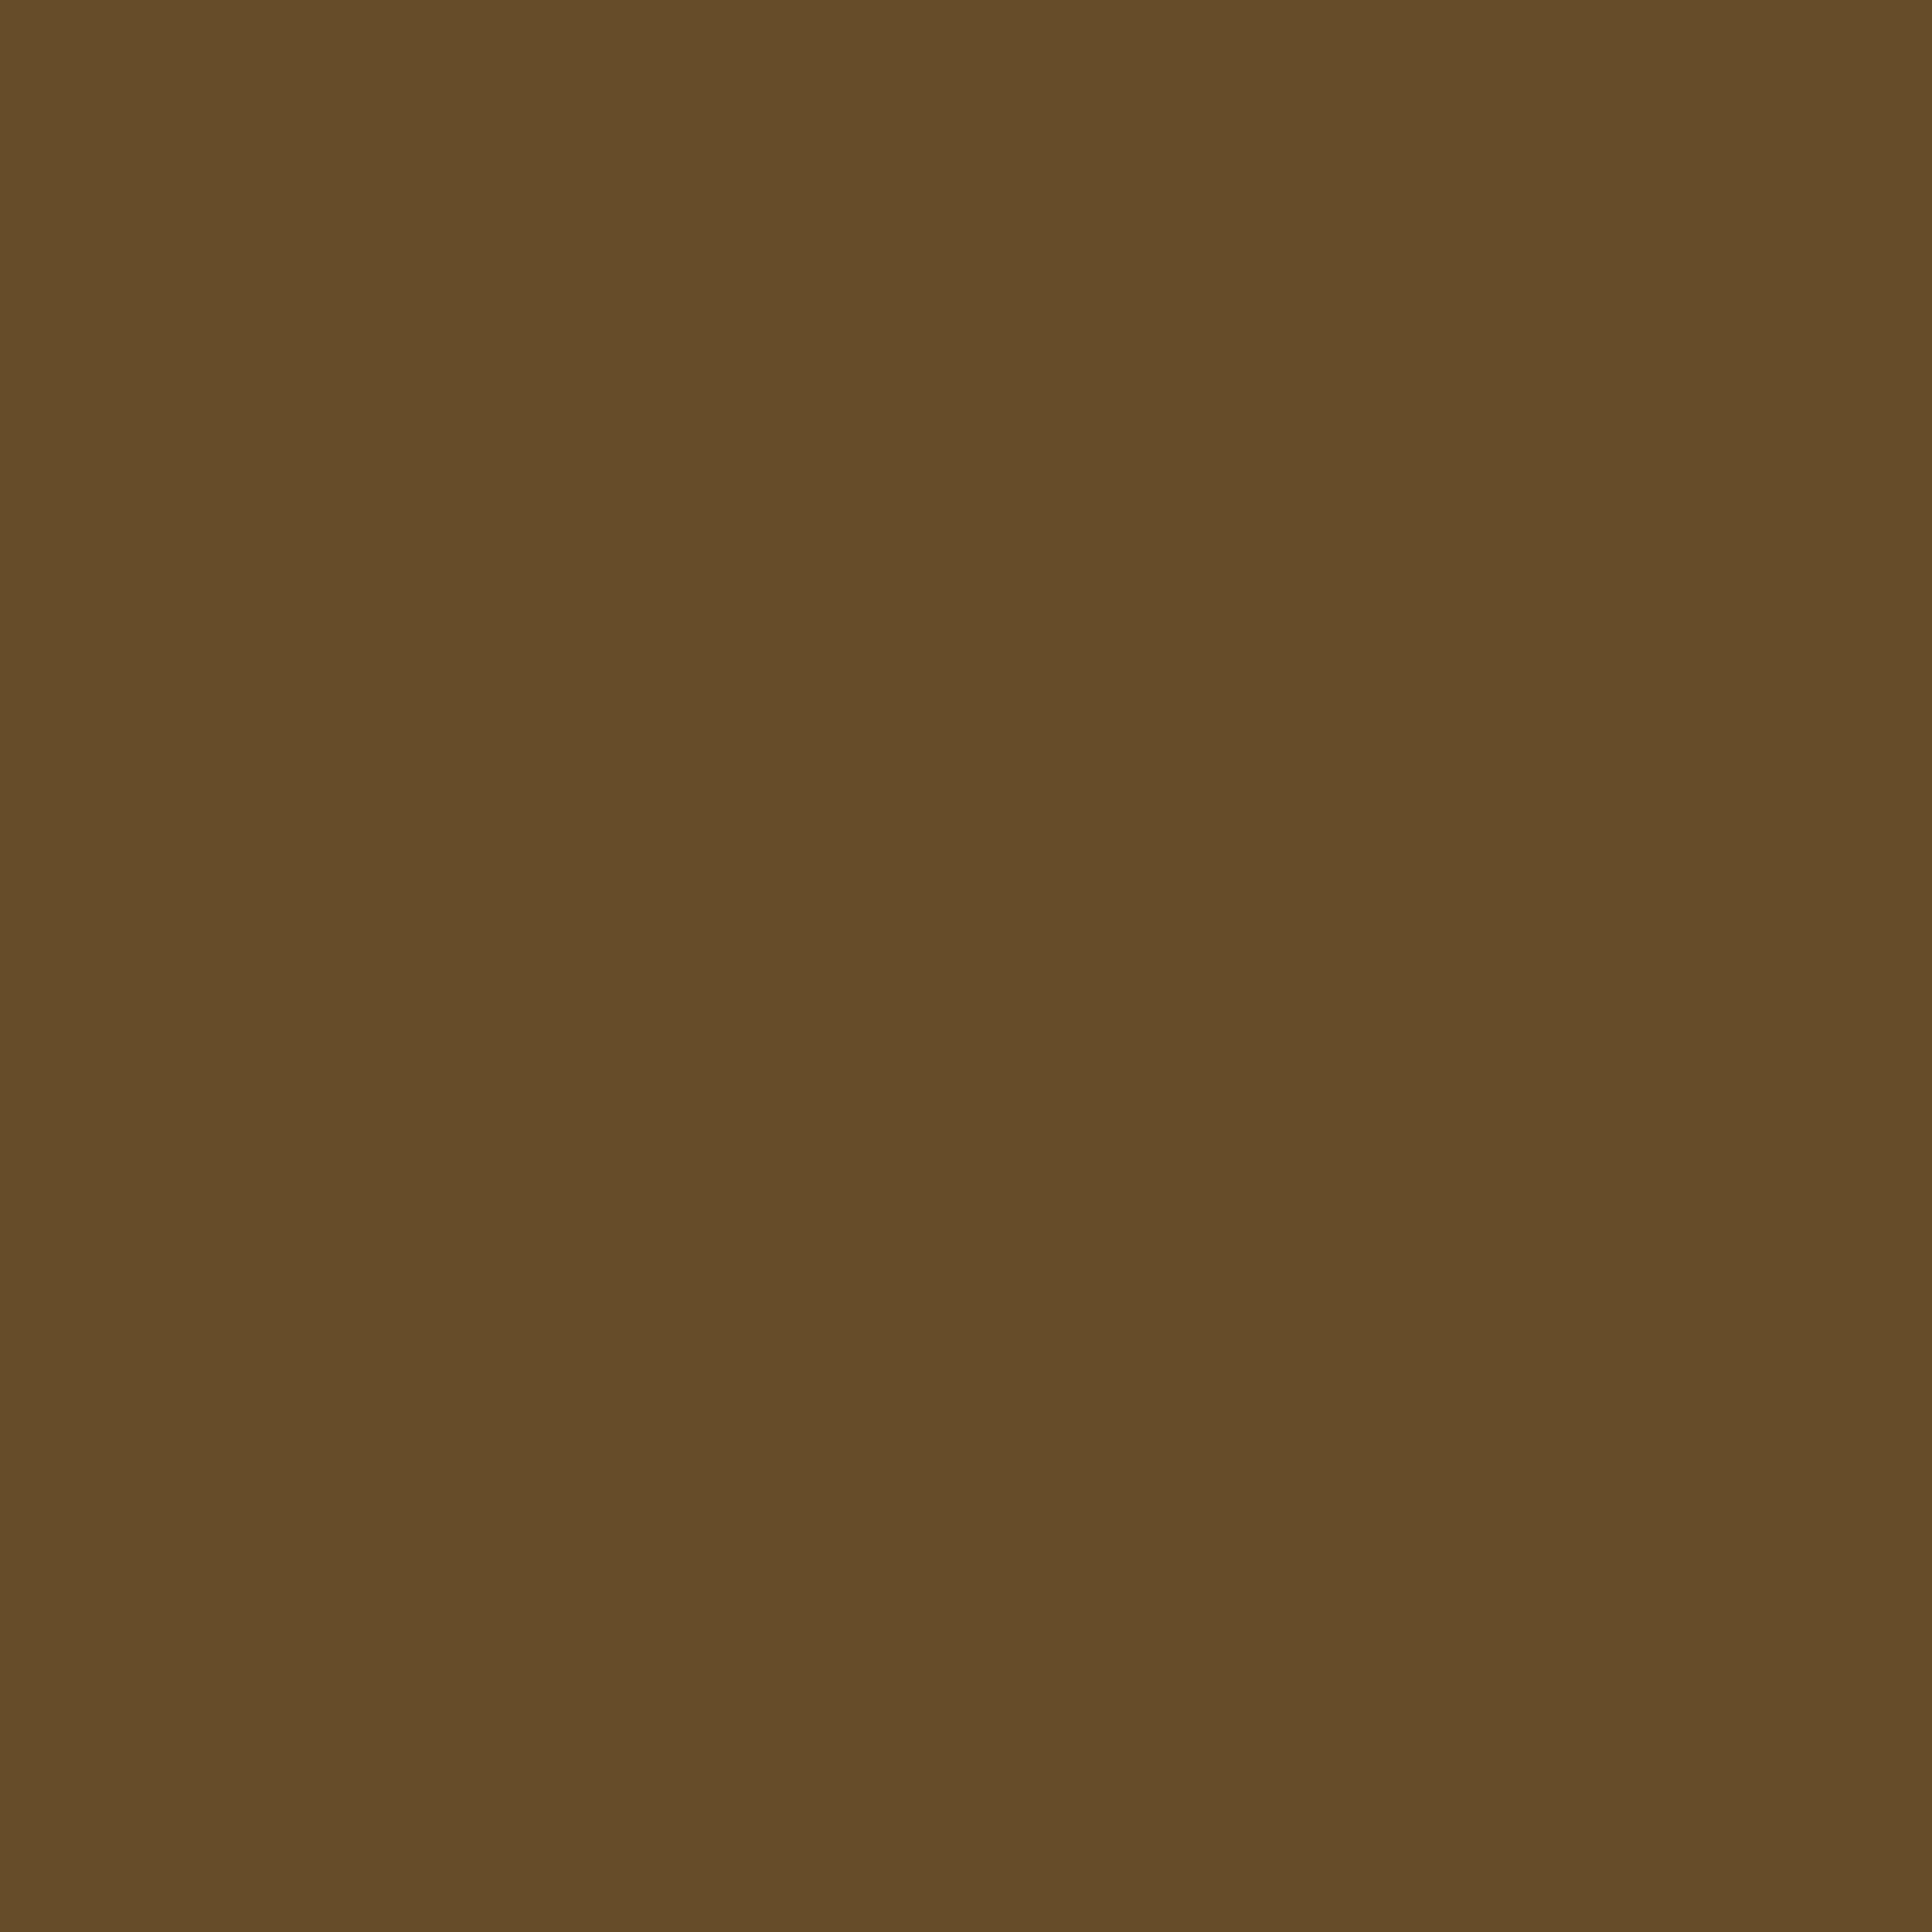 2048x2048 Donkey Brown Solid Color Background